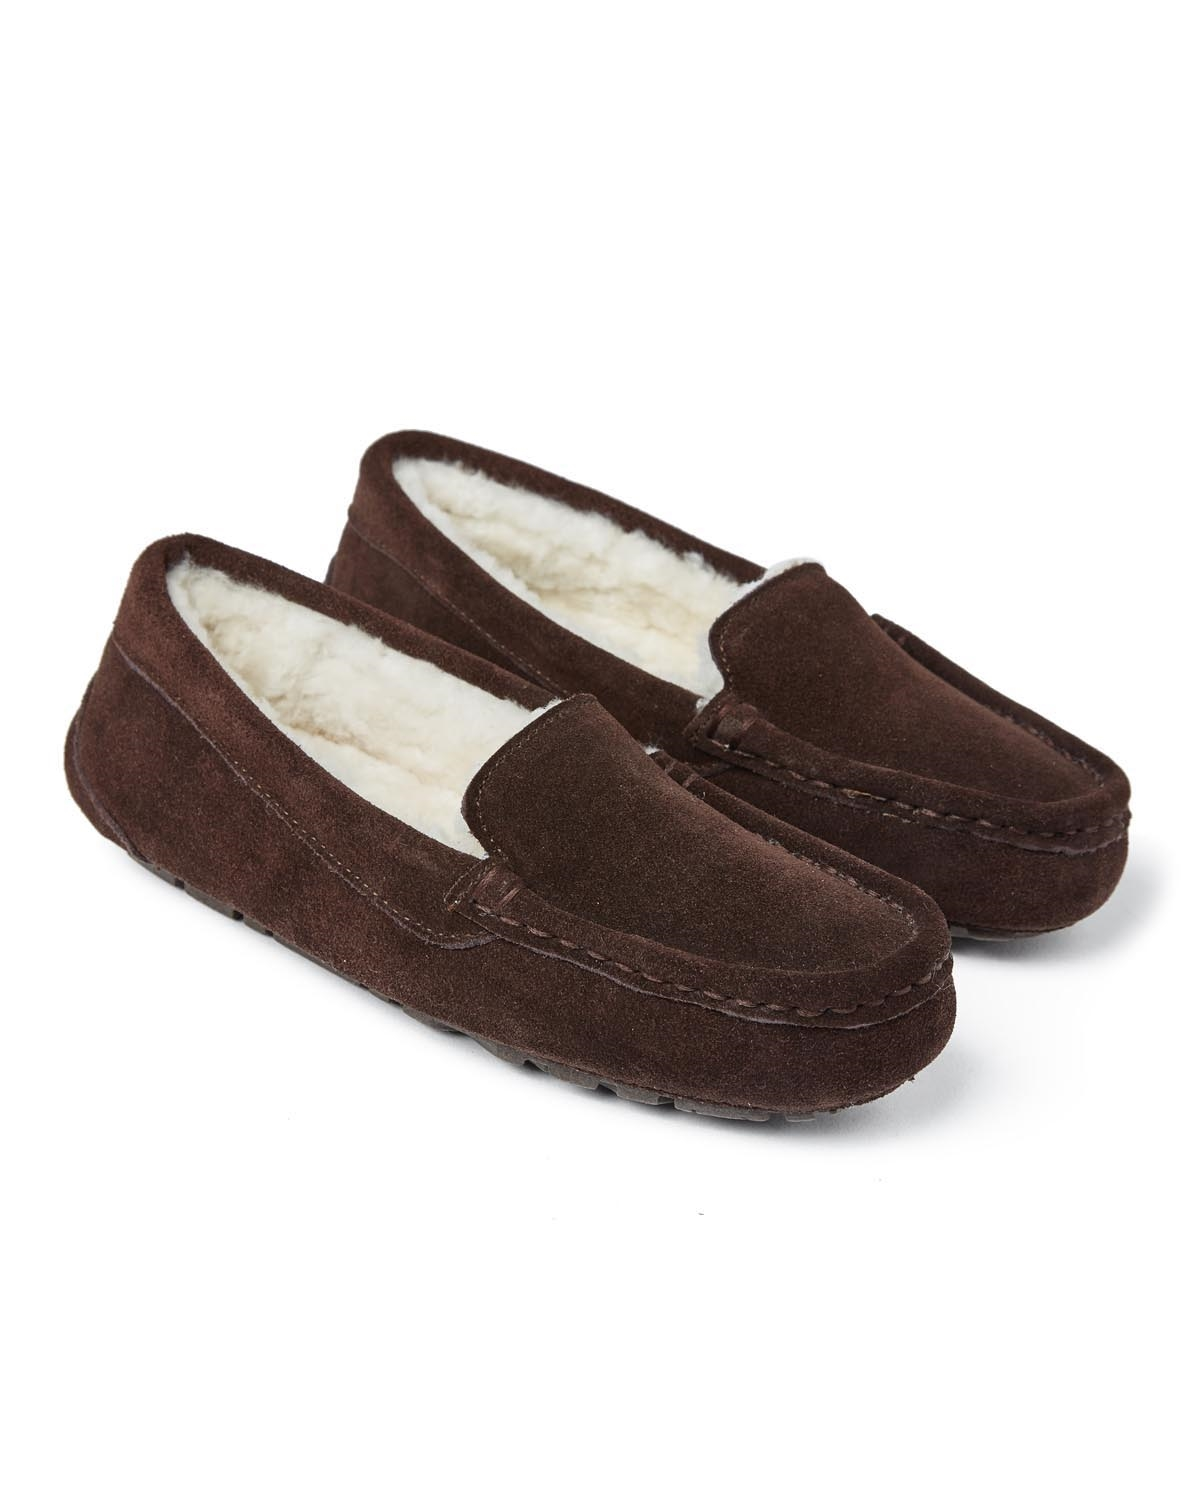 l loafer mocca pair.jpg